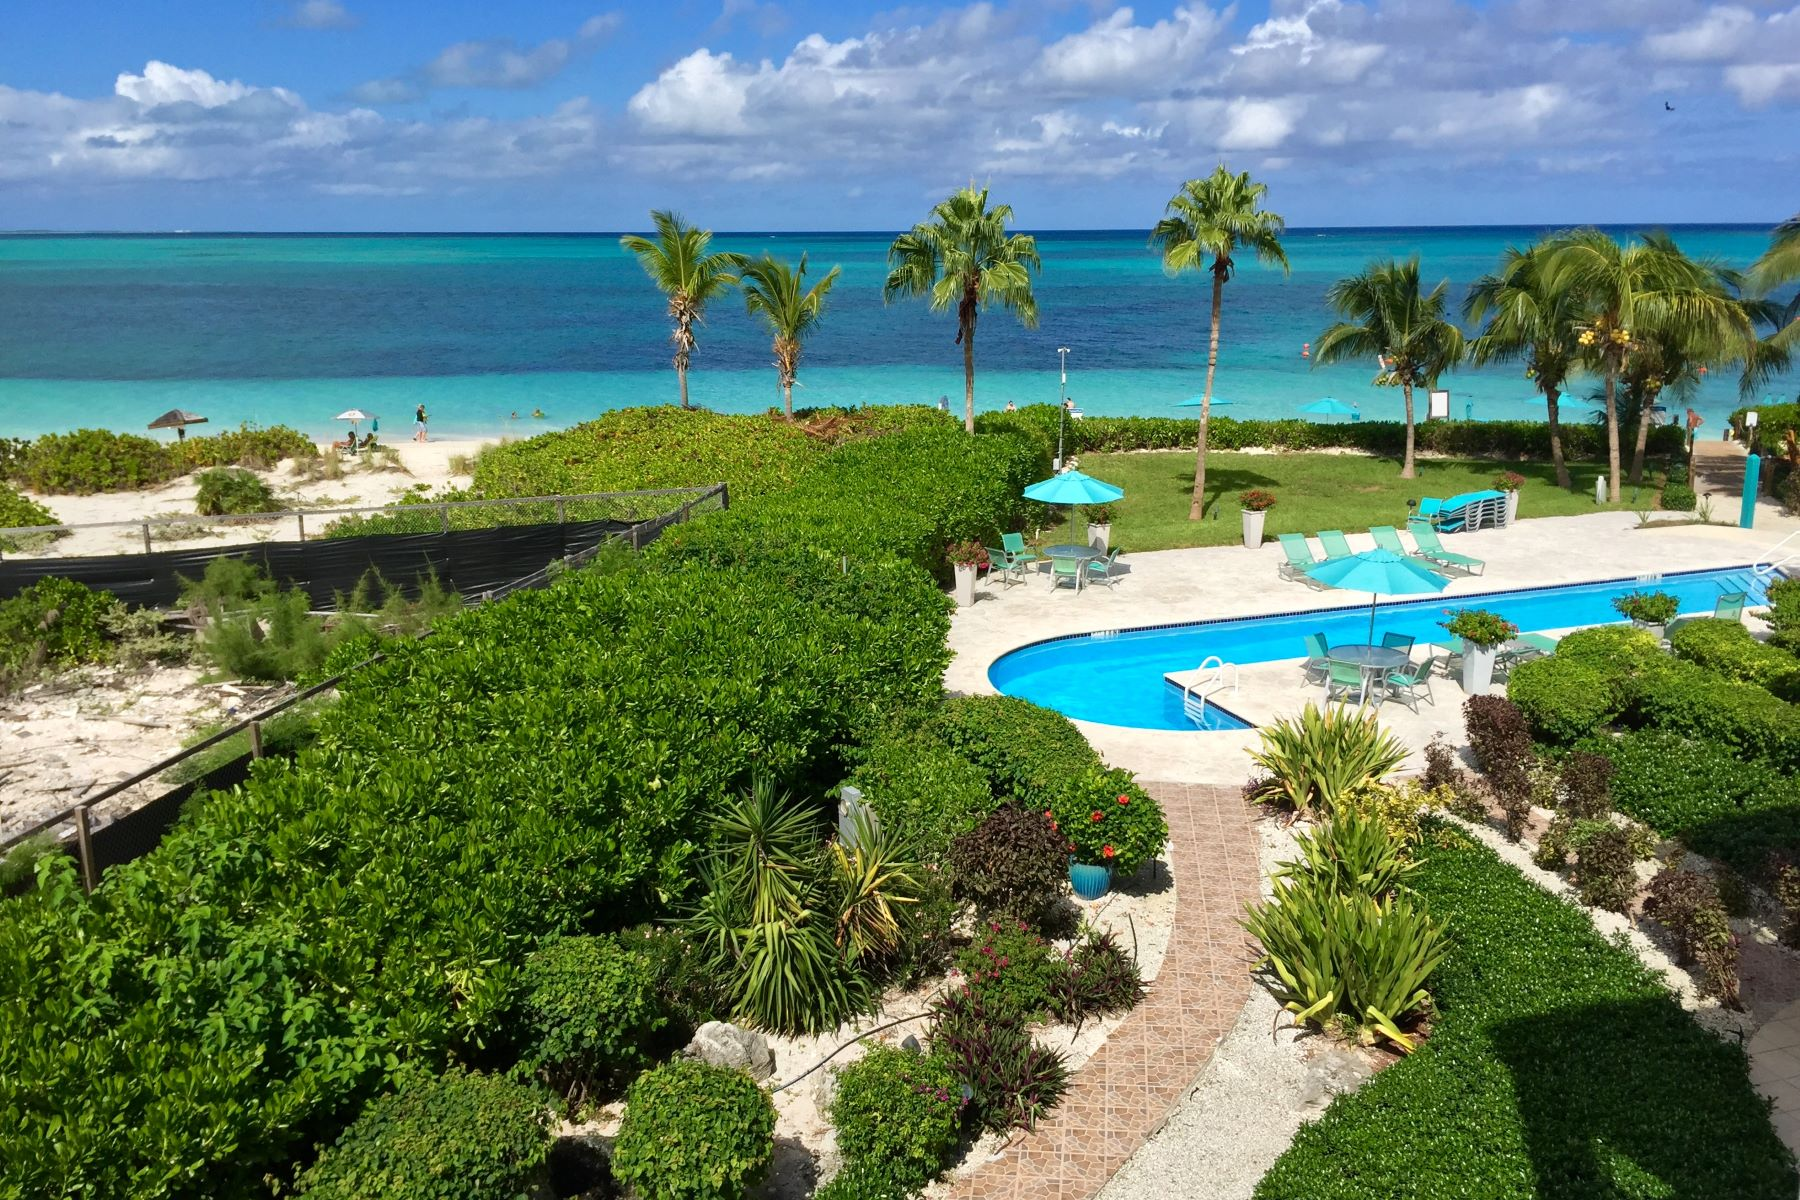 Condominium for Sale at Coral Gardens - Suite 4304 Beachfront Grace Bay, Providenciales TC Turks And Caicos Islands